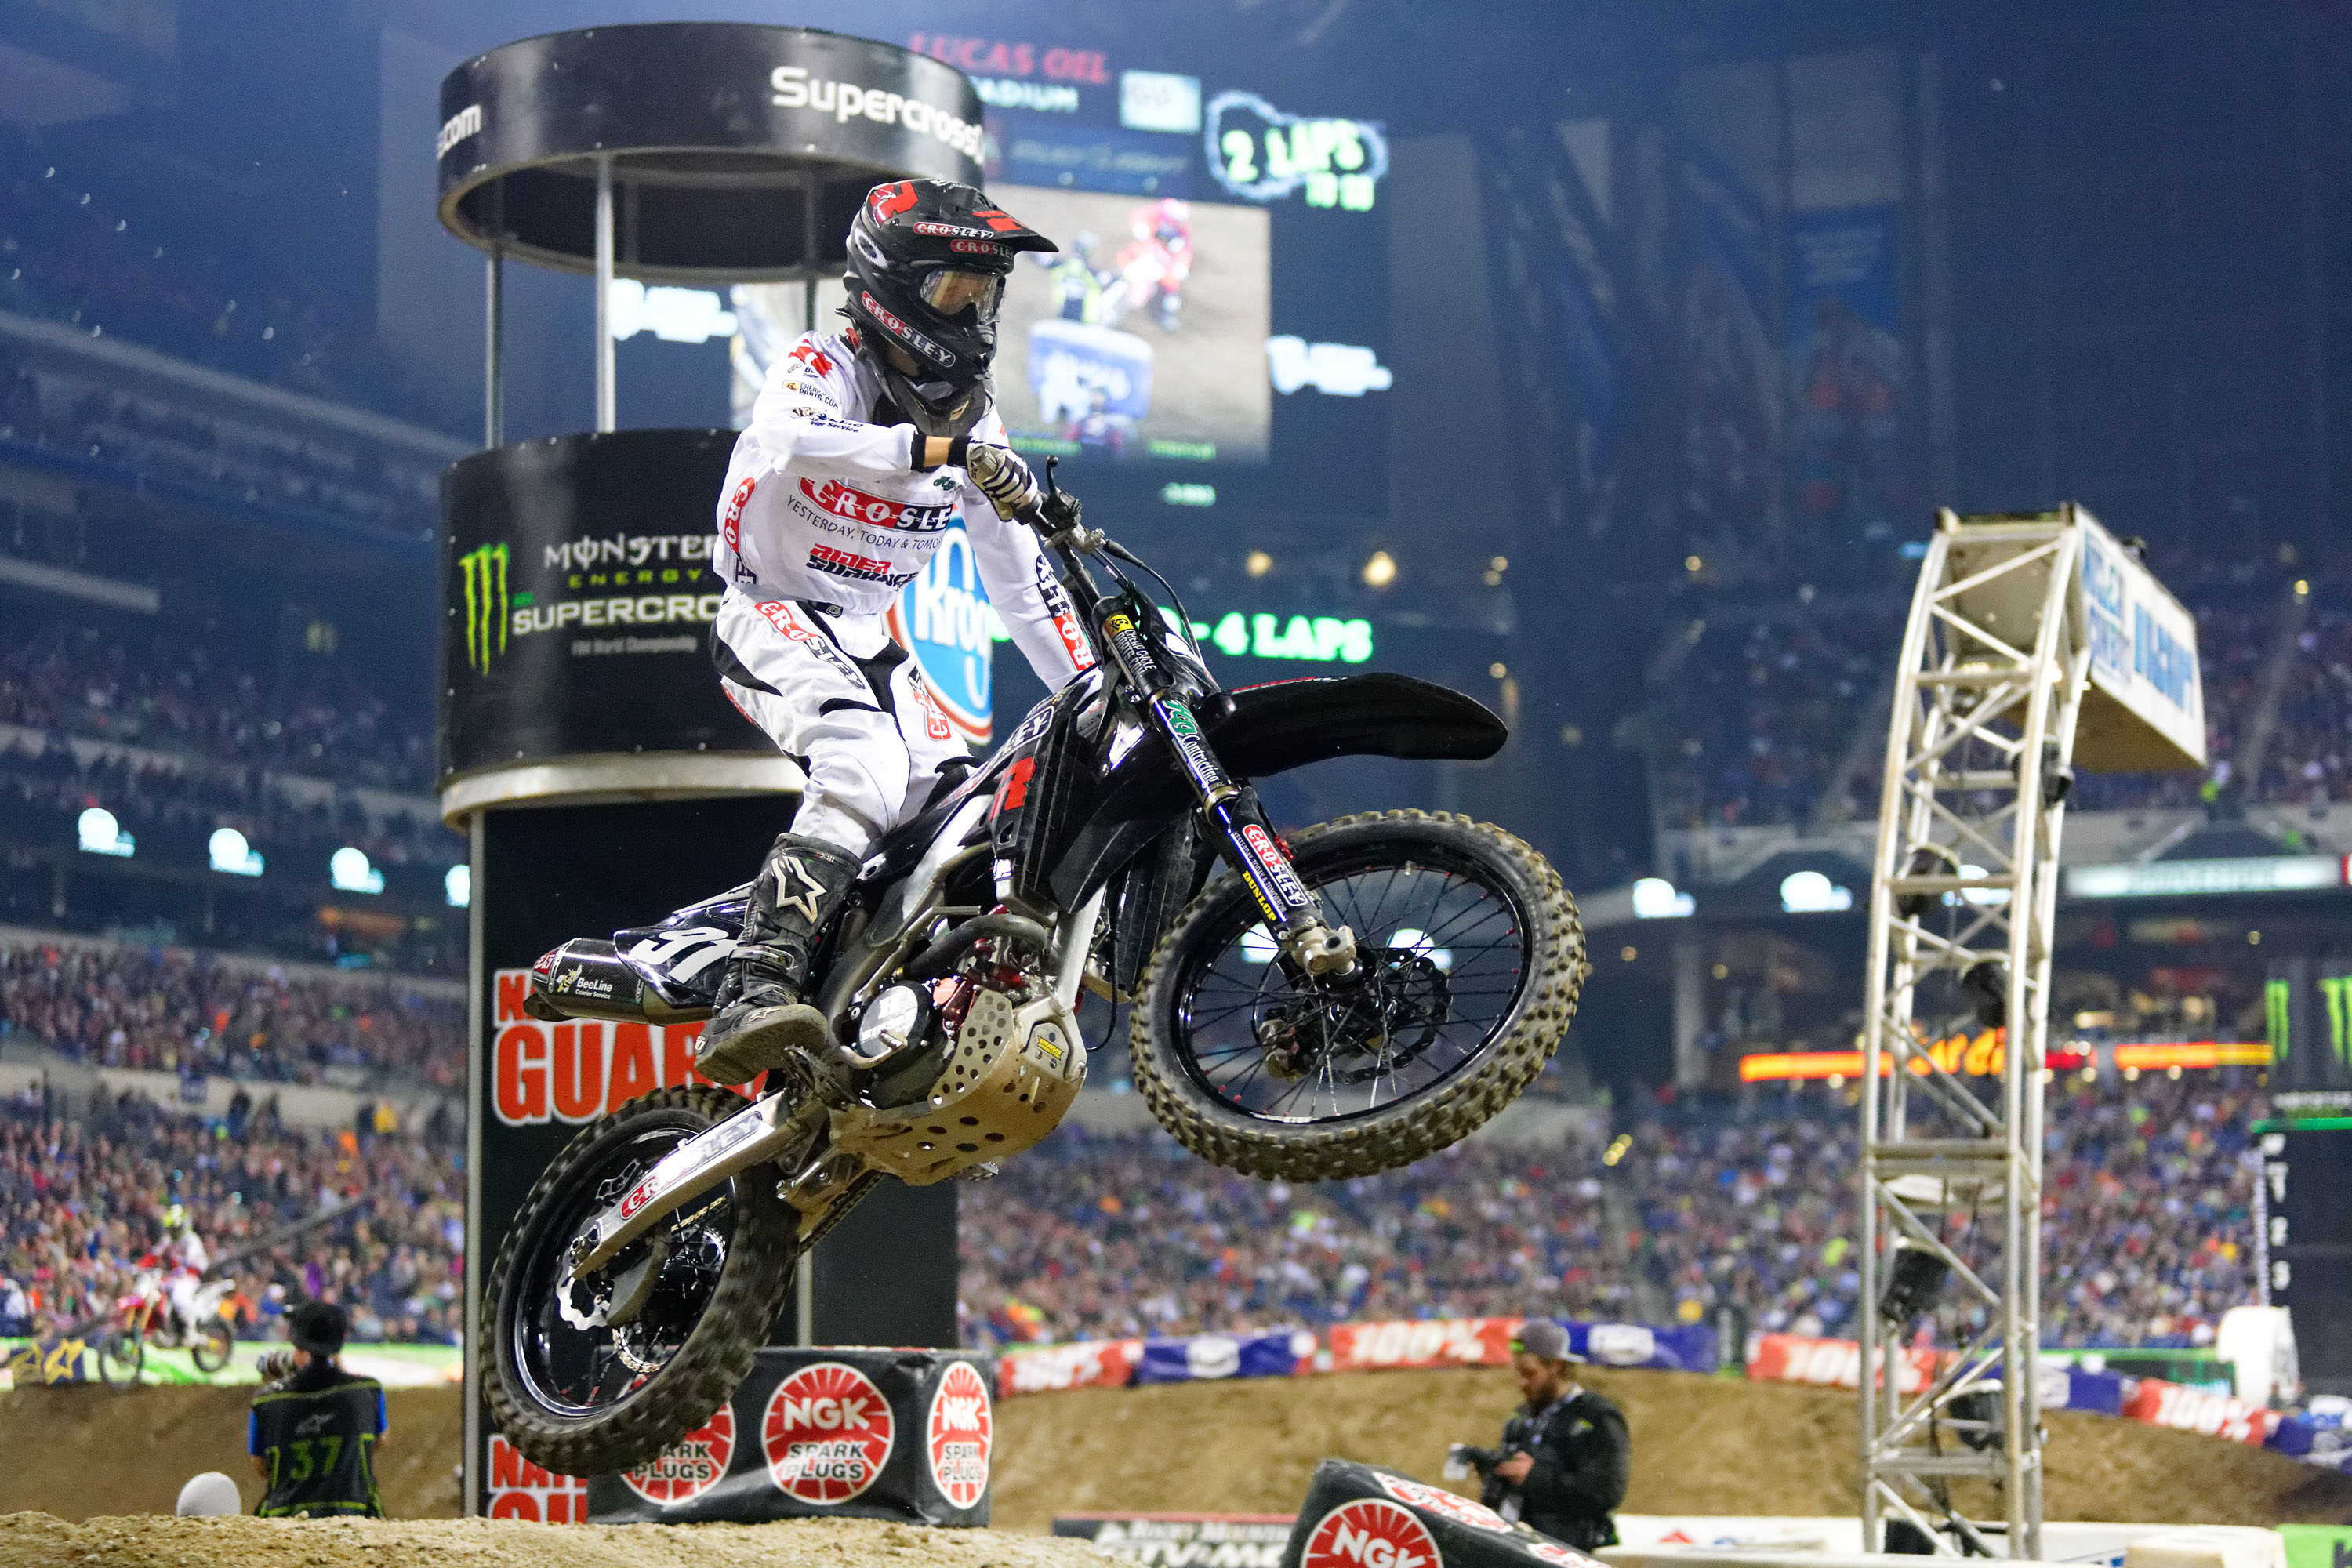 Baumert is adjusting to Monster Energy Supercross, and made his first career main last Saturday. Photo: Andrew Fredrickson